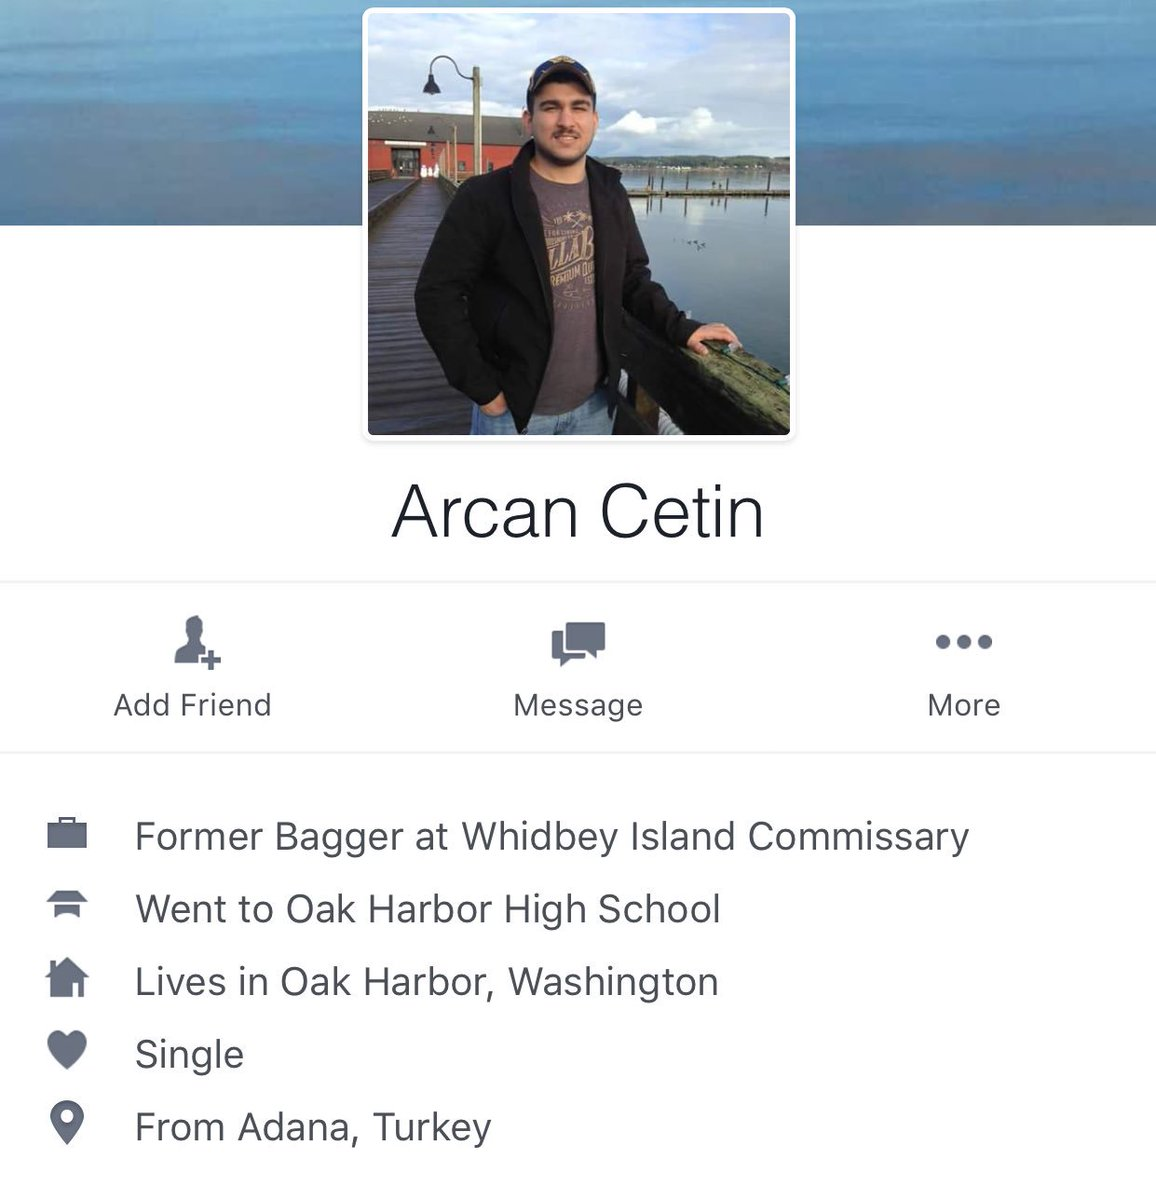 #mallshooting suspect arrested -- 20 year old Turkish immigrant named Arcan Cetin https://t.co/1mi17PPWkC https://t.co/ZVNUFAgCo8